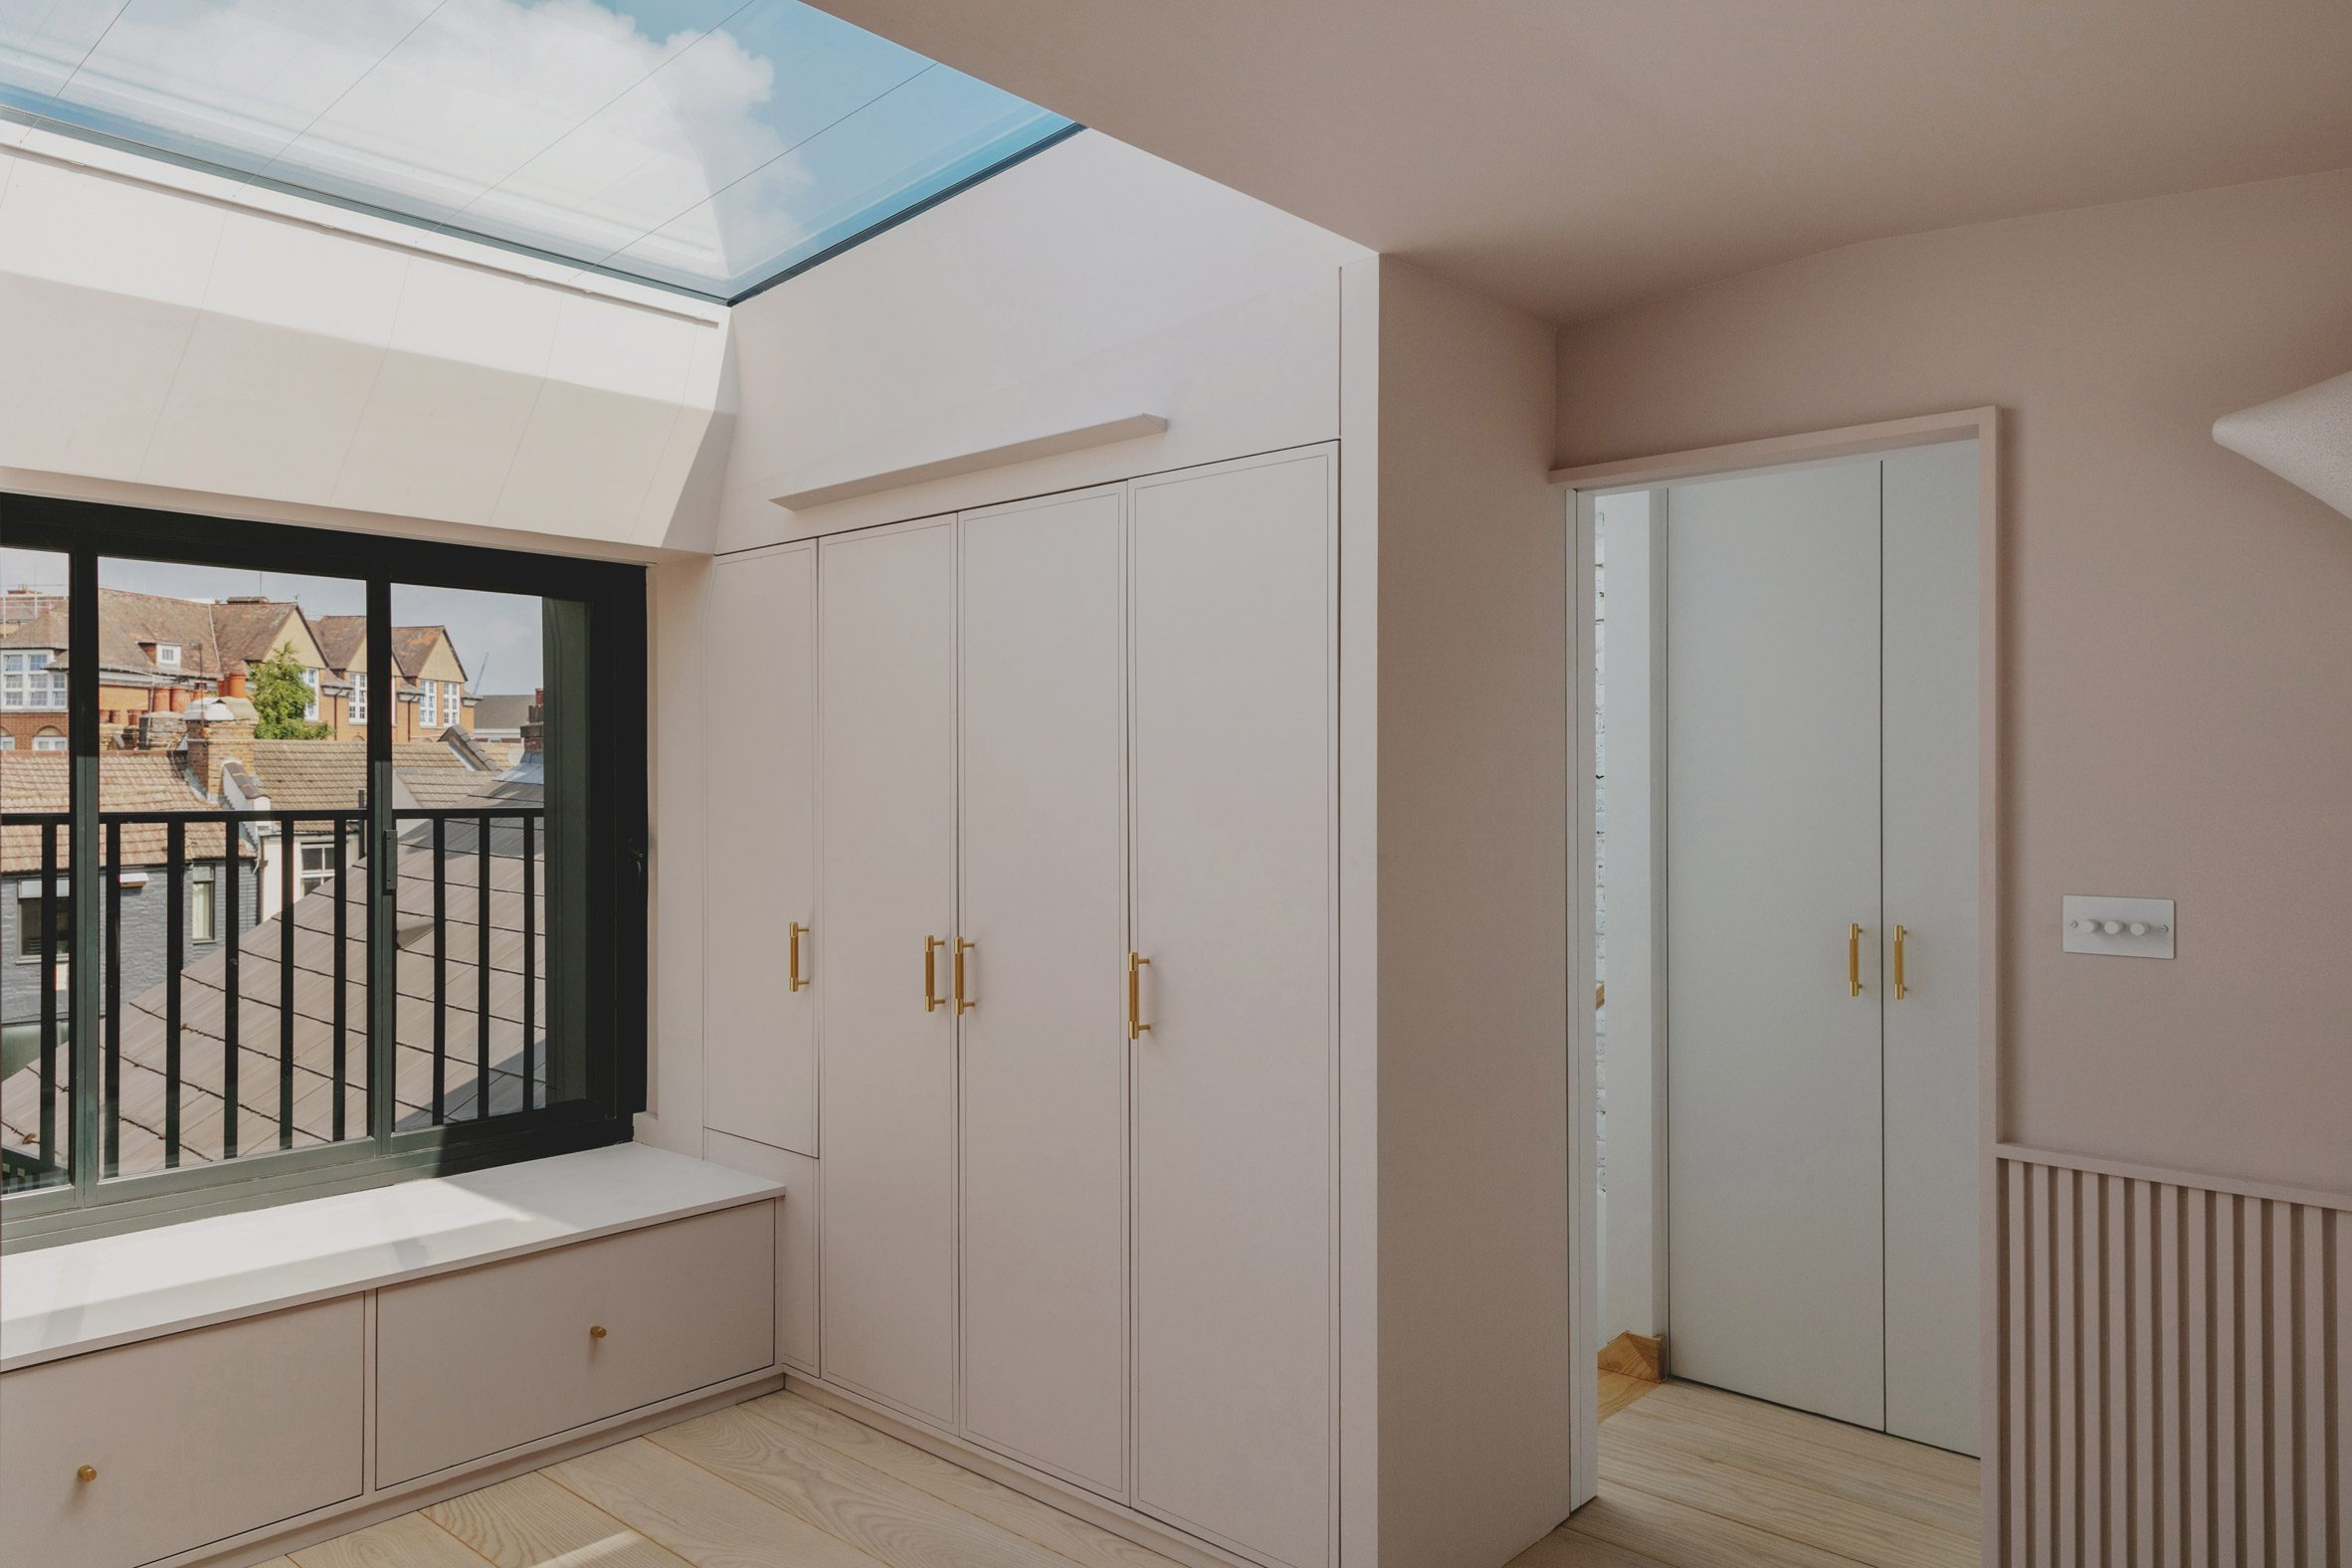 Dressing area in Bed and window in Narford Road loft extension by Emil Eve Architects